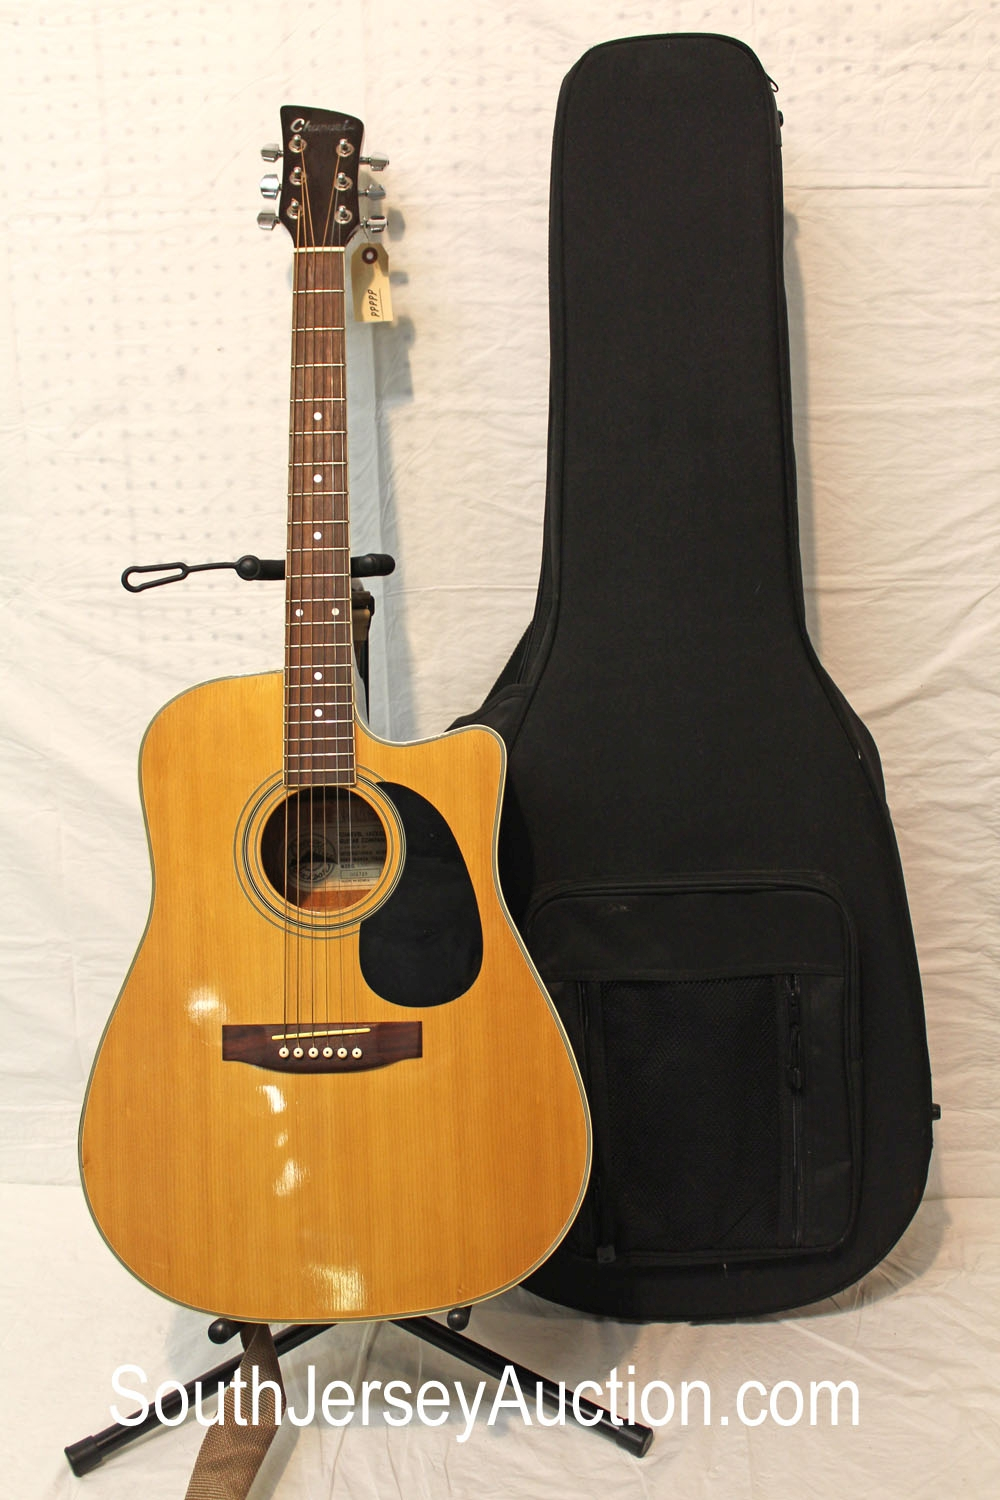 1980 Charvel Acoustic Butterscotch, s/n 001728 made in Korea, in good condition, with strap, hard side soft gig case